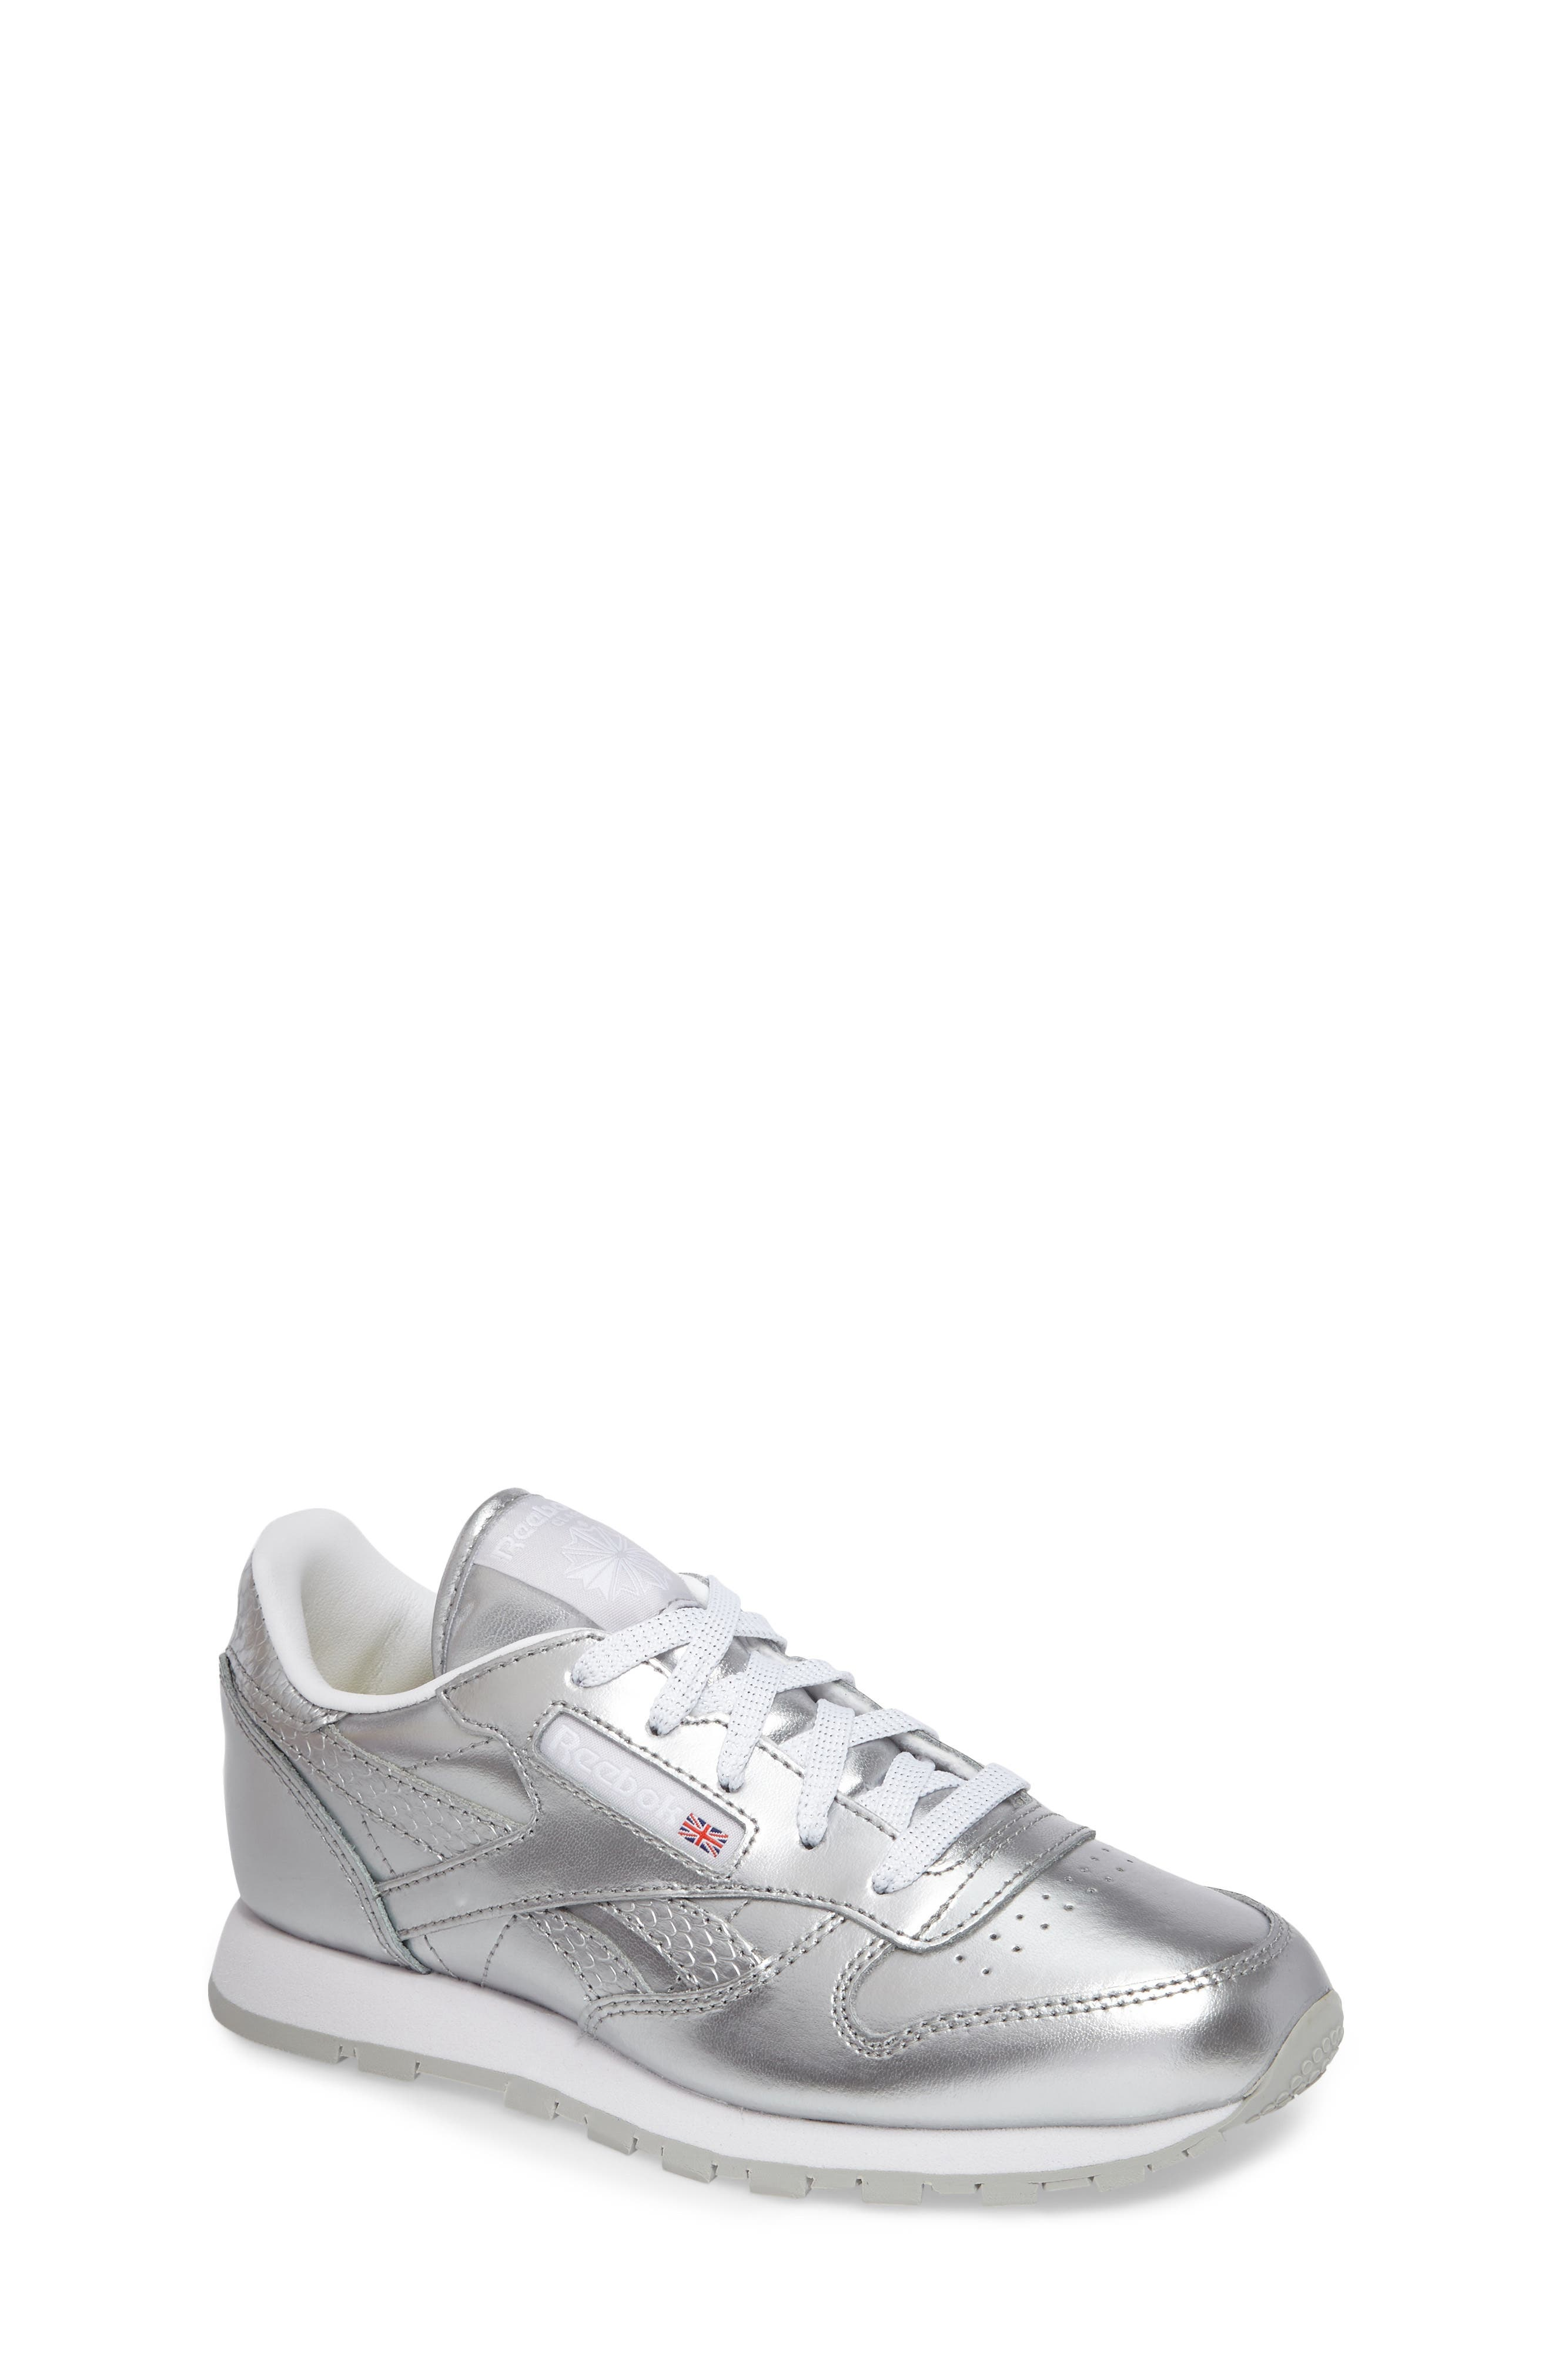 Classic Metallic Sneaker,                             Main thumbnail 1, color,                             Silver/ White